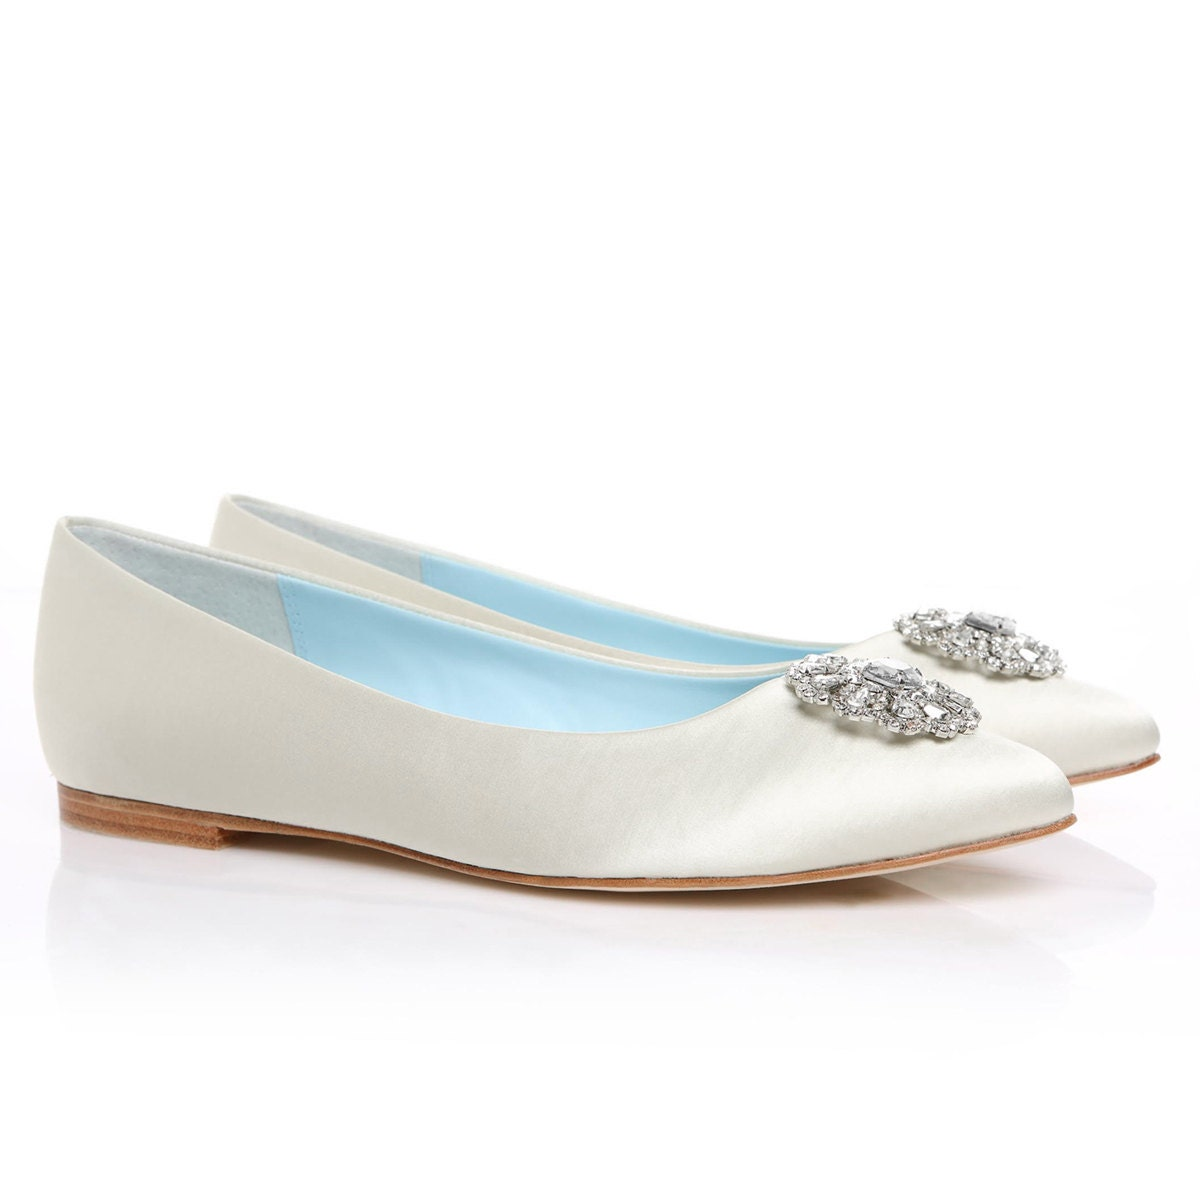 White Bridal Flats Wedding Flats Shoes With Crystal And